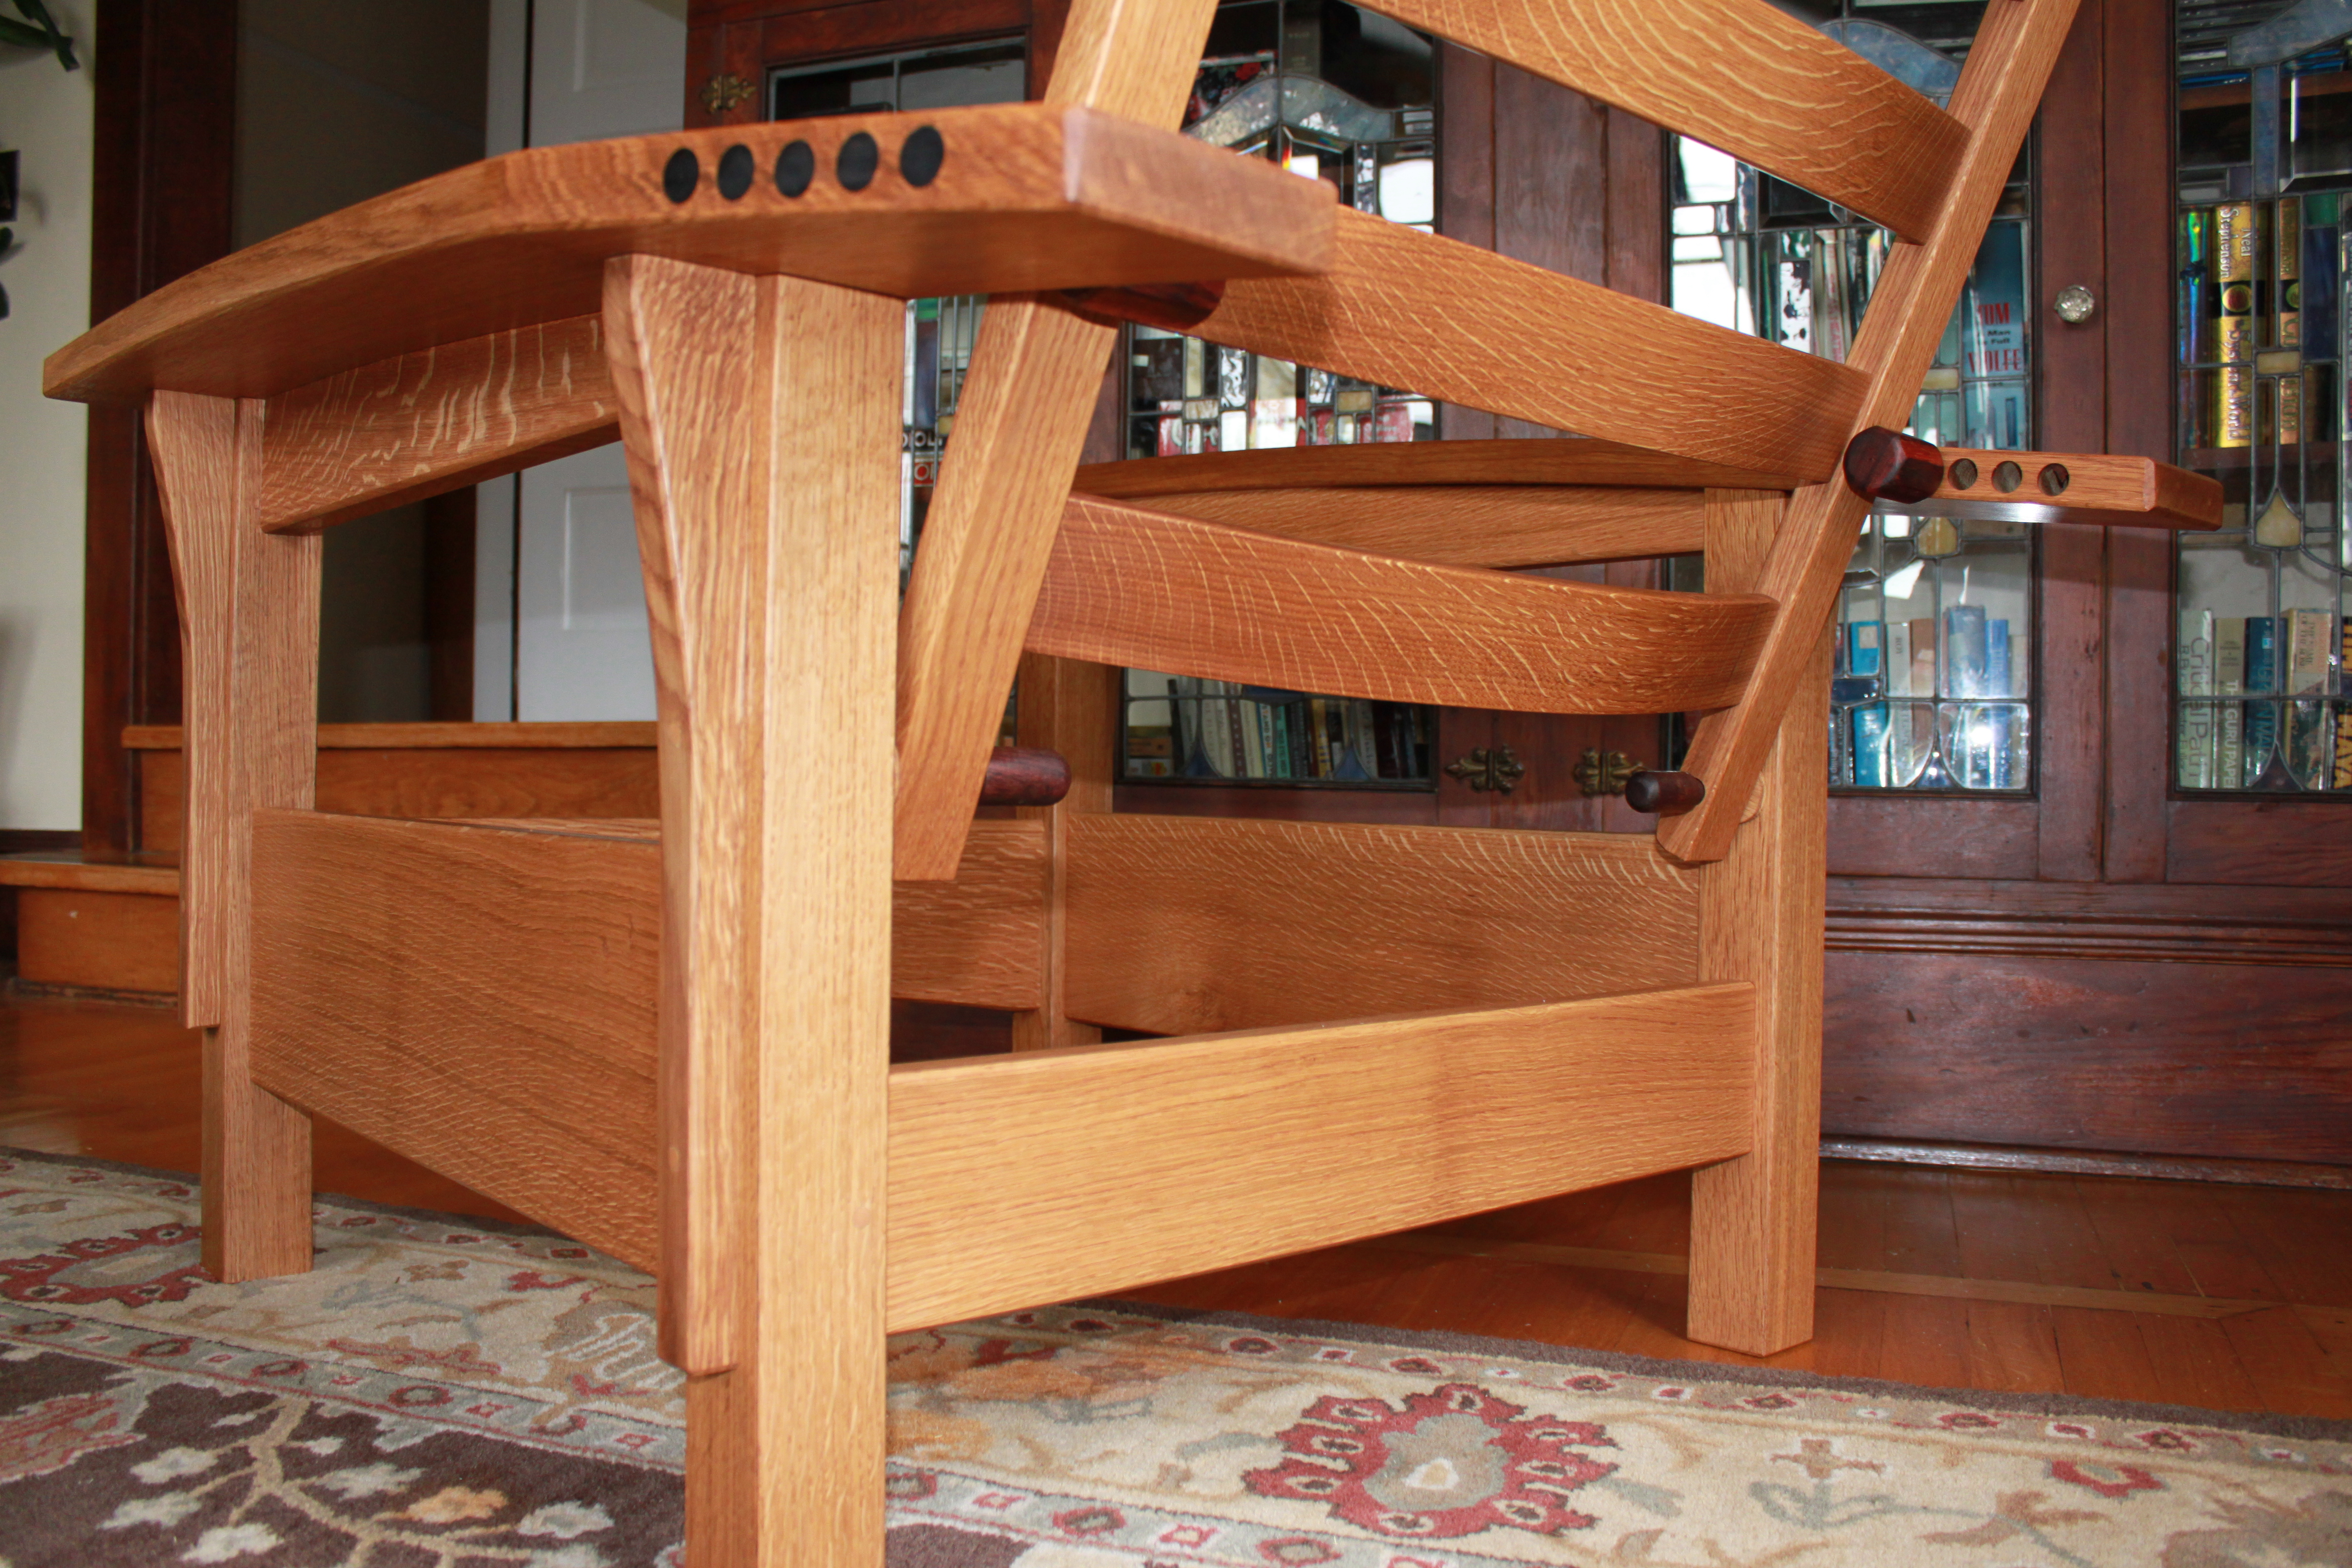 Download Fine Woodworking Morris Chair Plans Pdf Entry